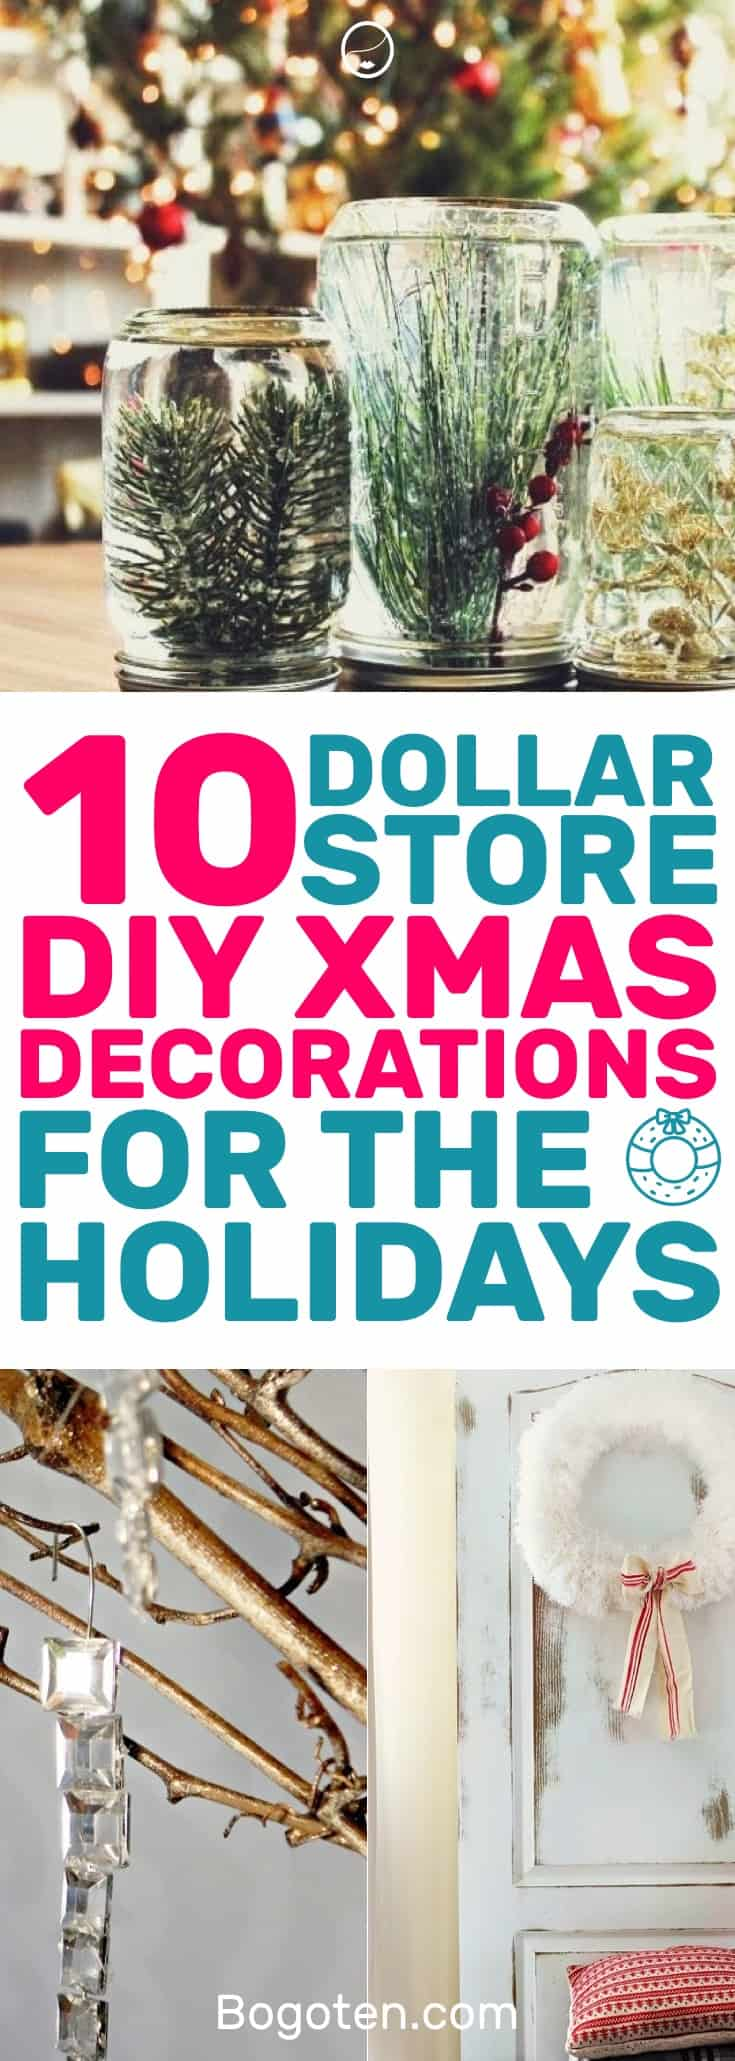 who doesnt want to decorate their home for the holidays these diy dollar